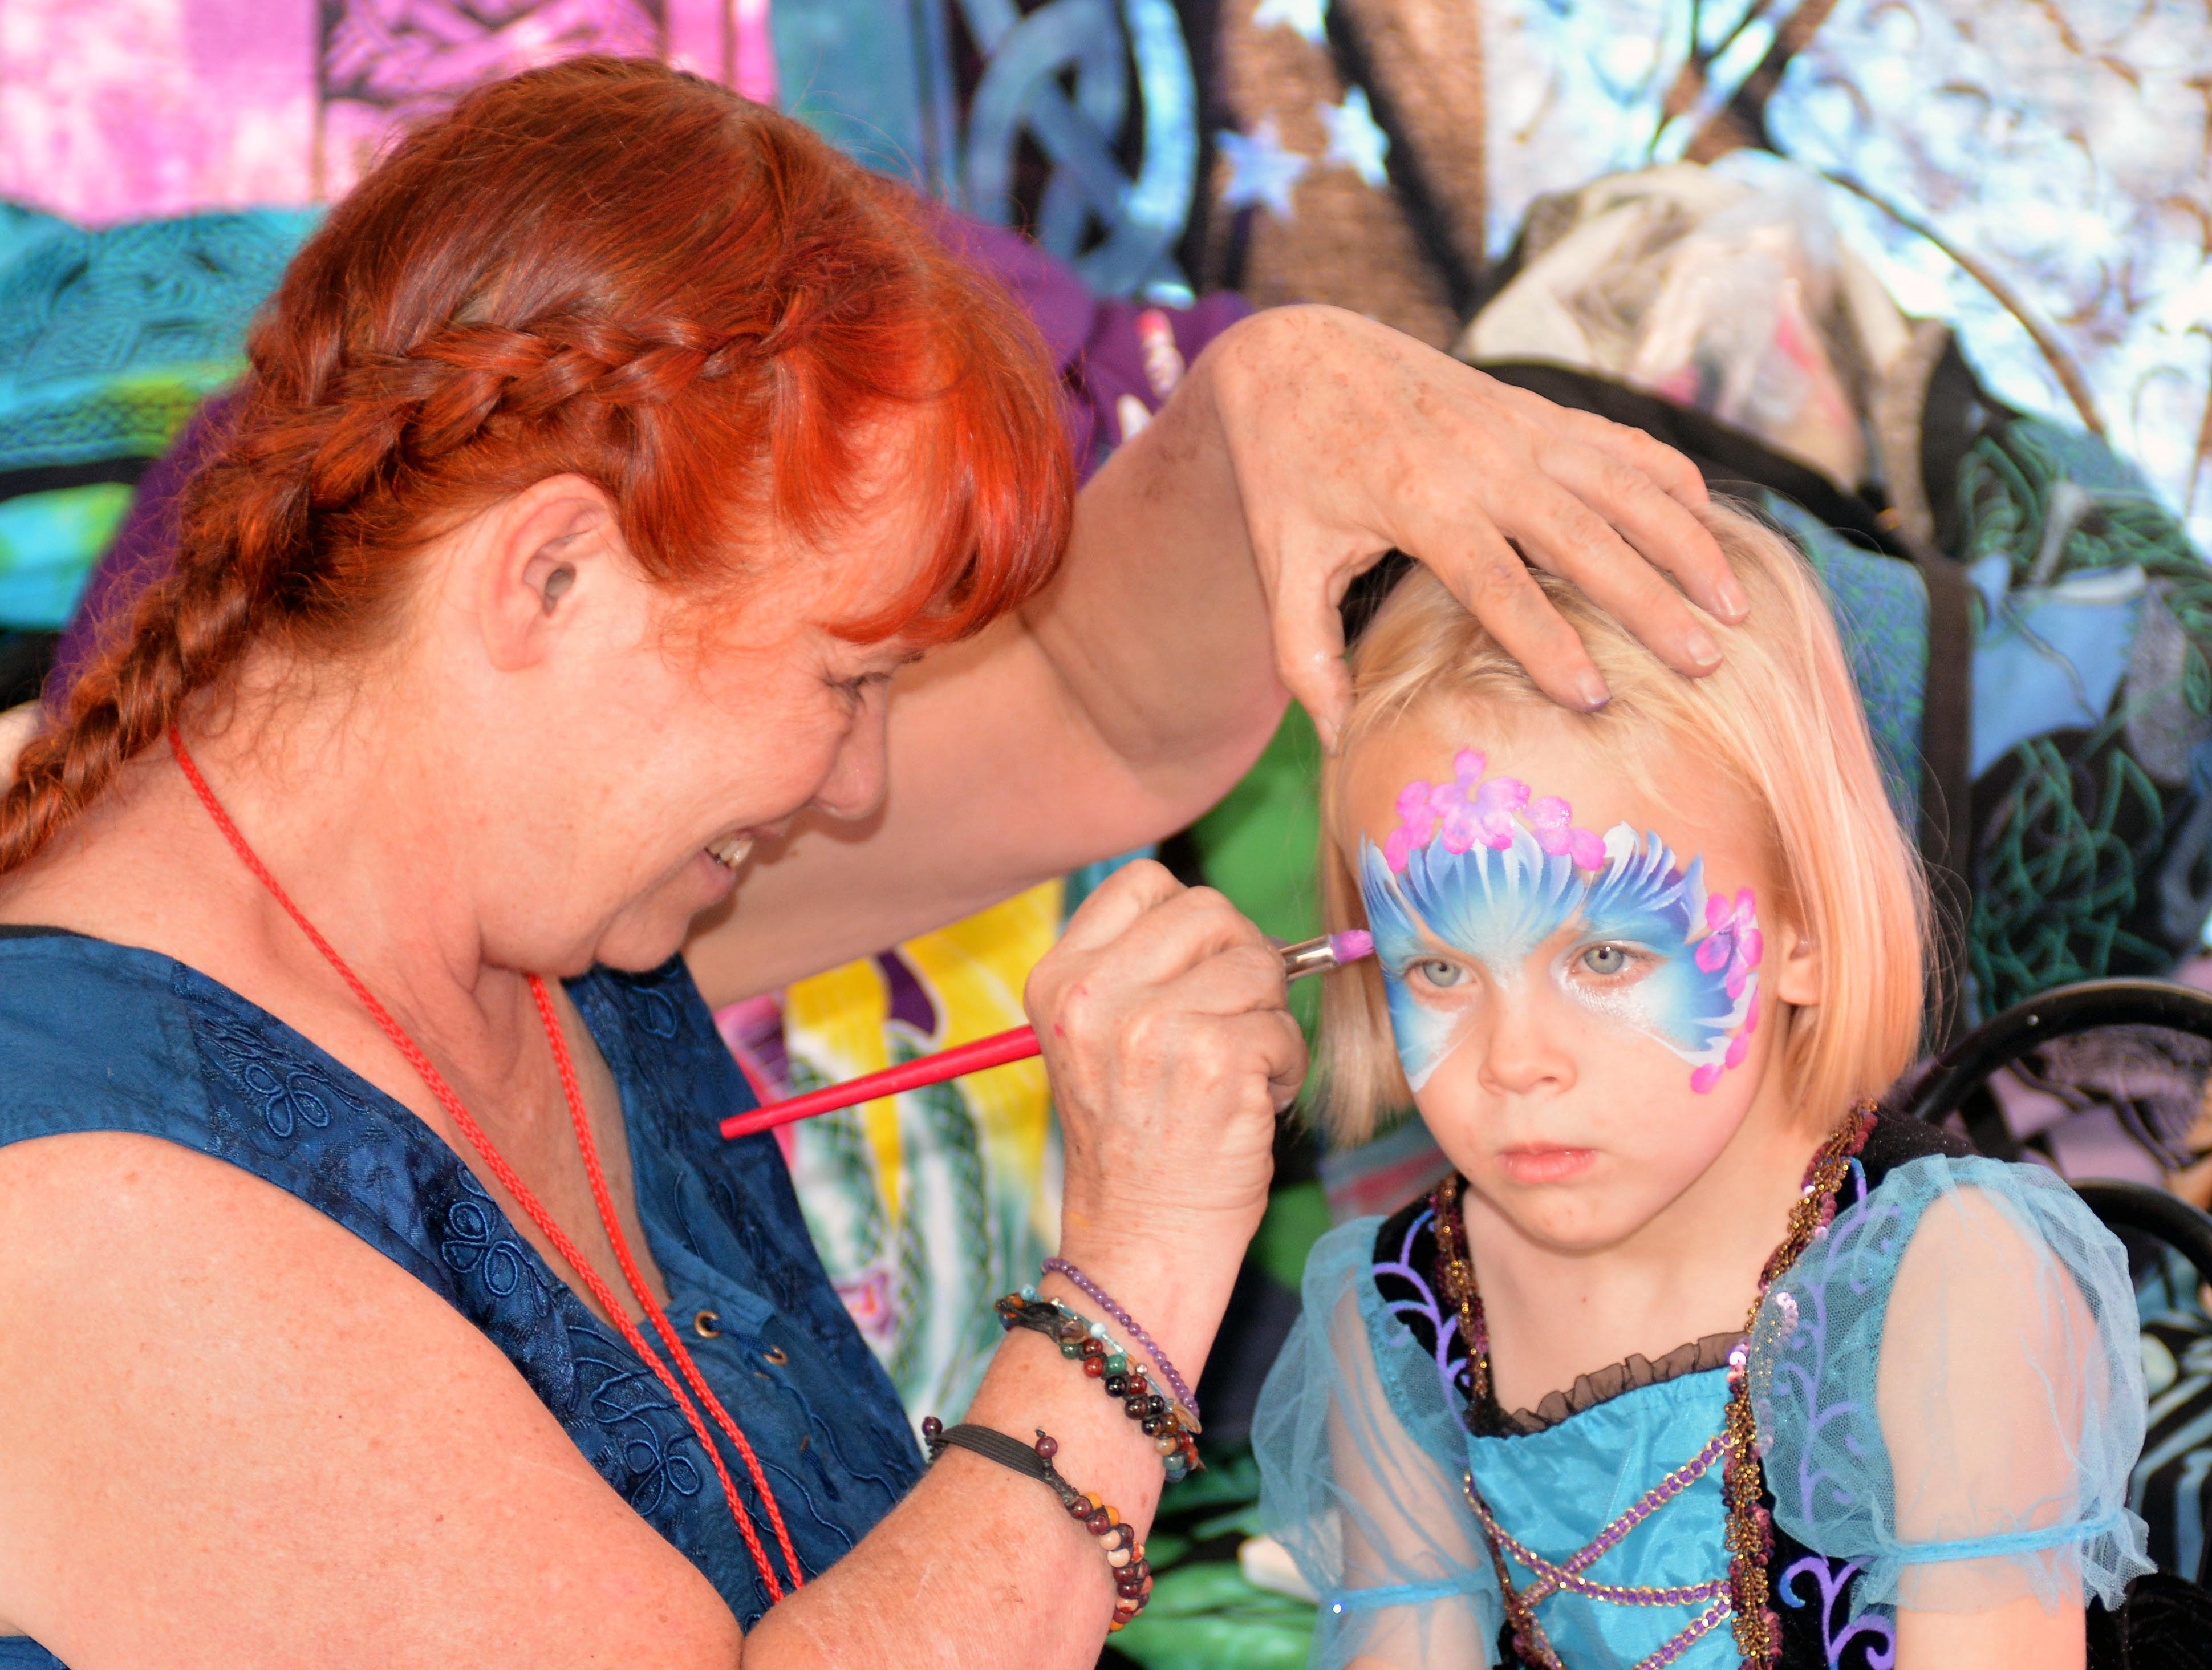 Four-year-old Grace Hempstead from Albuquerque gets her face painted.  Photo taken 11/3/18.